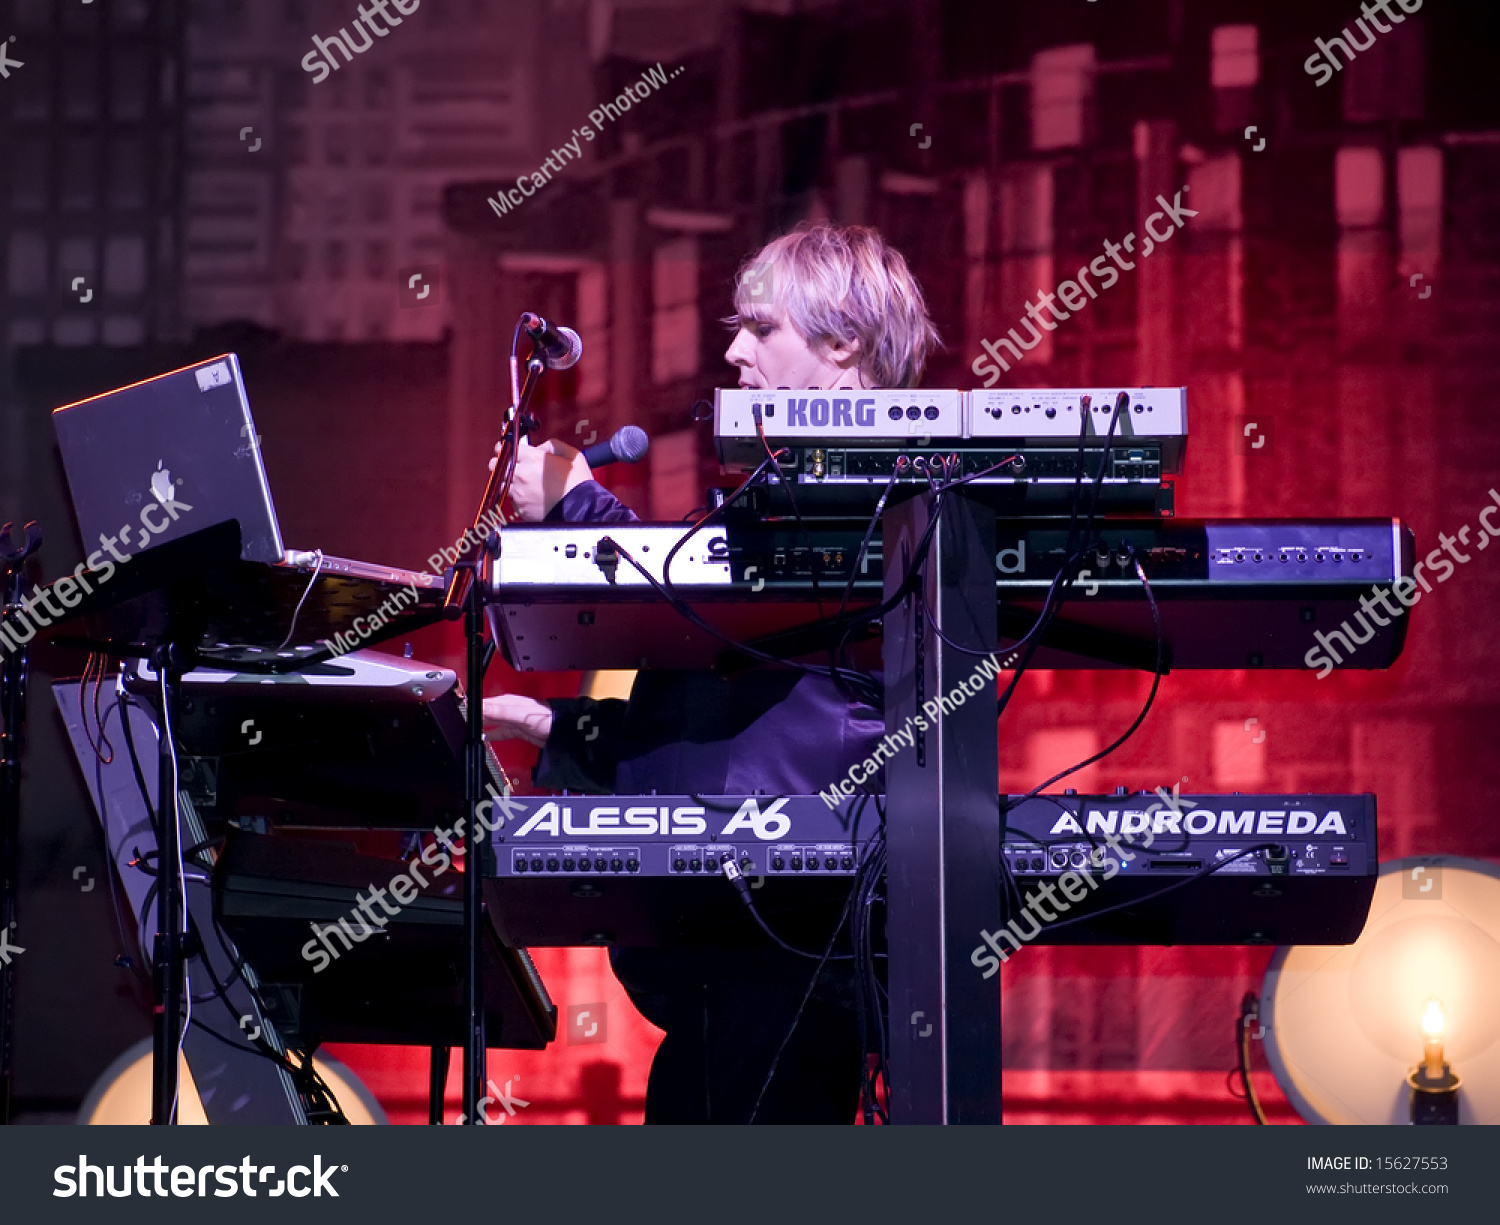 malta july 26 duran duran keyboardist nick rhodes live